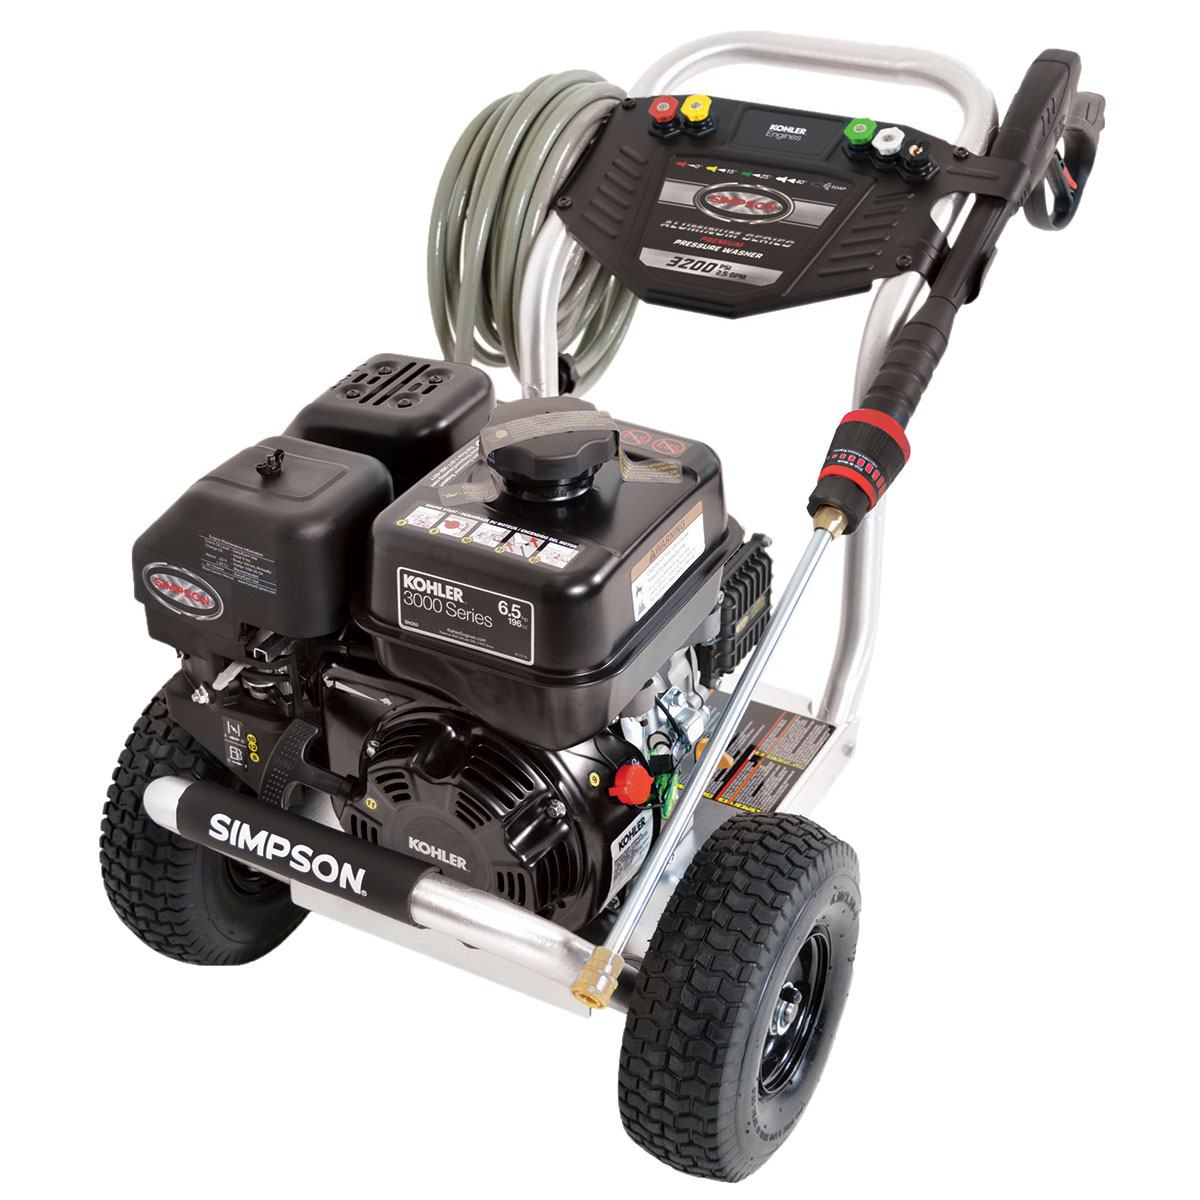 3200 PSI Aluminum Series - Commercial Direct Drive Pressure Washer with a Kohler SH265 engine and a 25' hose - ALH3225-S